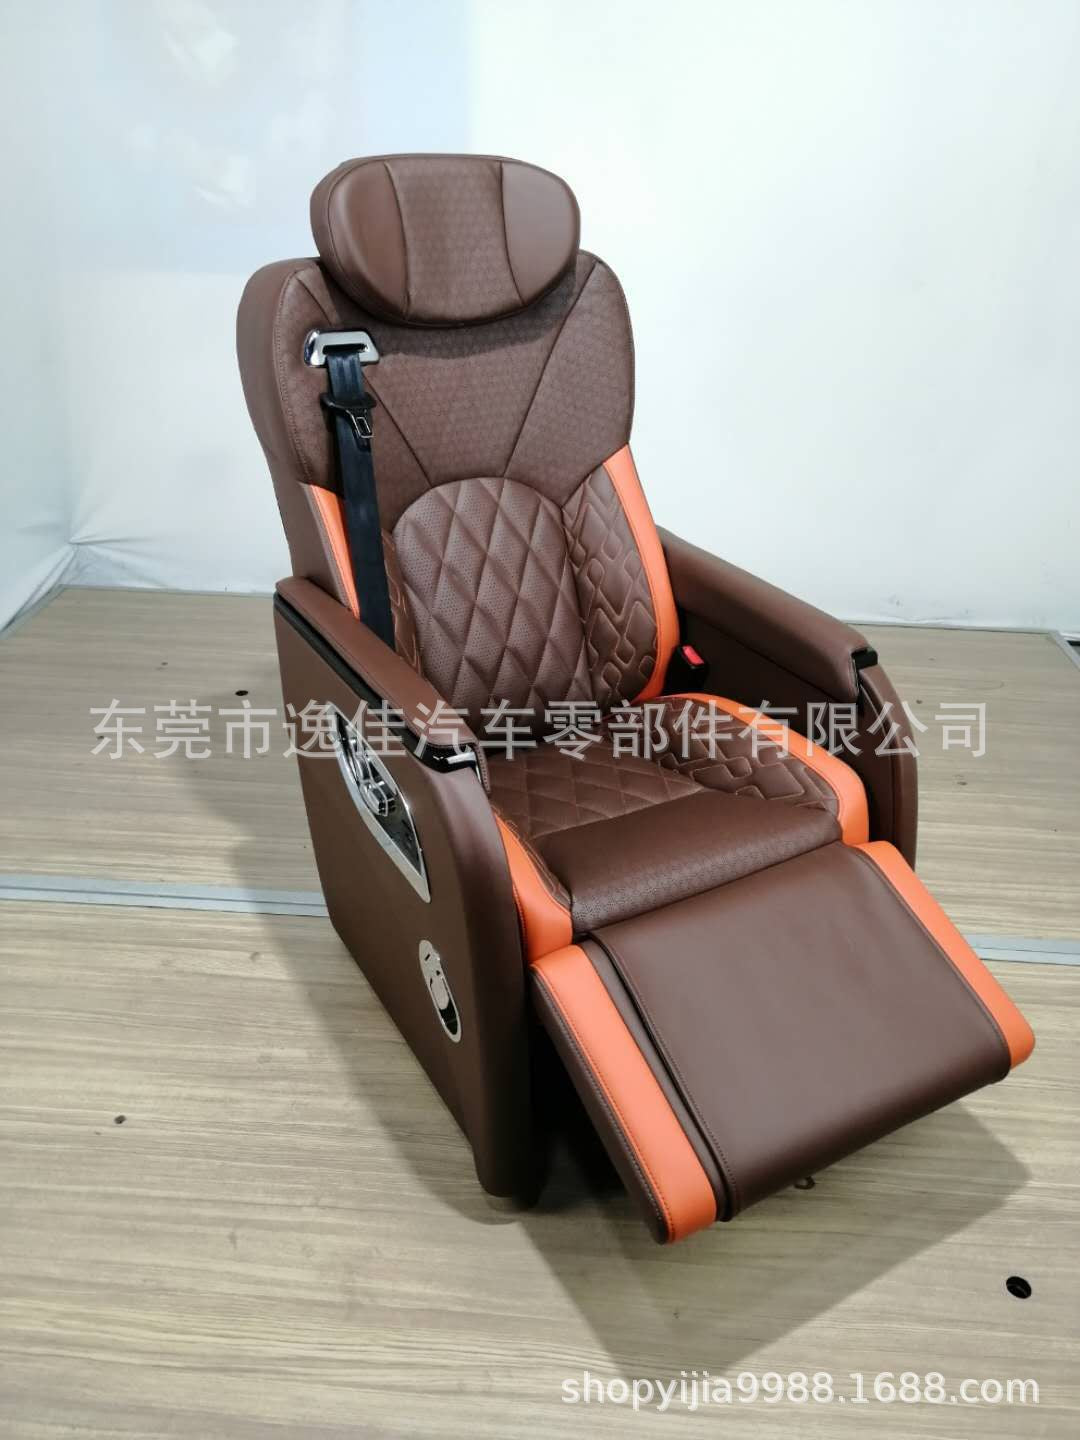 Specializing in the production of commercial vehicle aviation seats, car seats, cruise seat, medical aviation seats, smart chairs